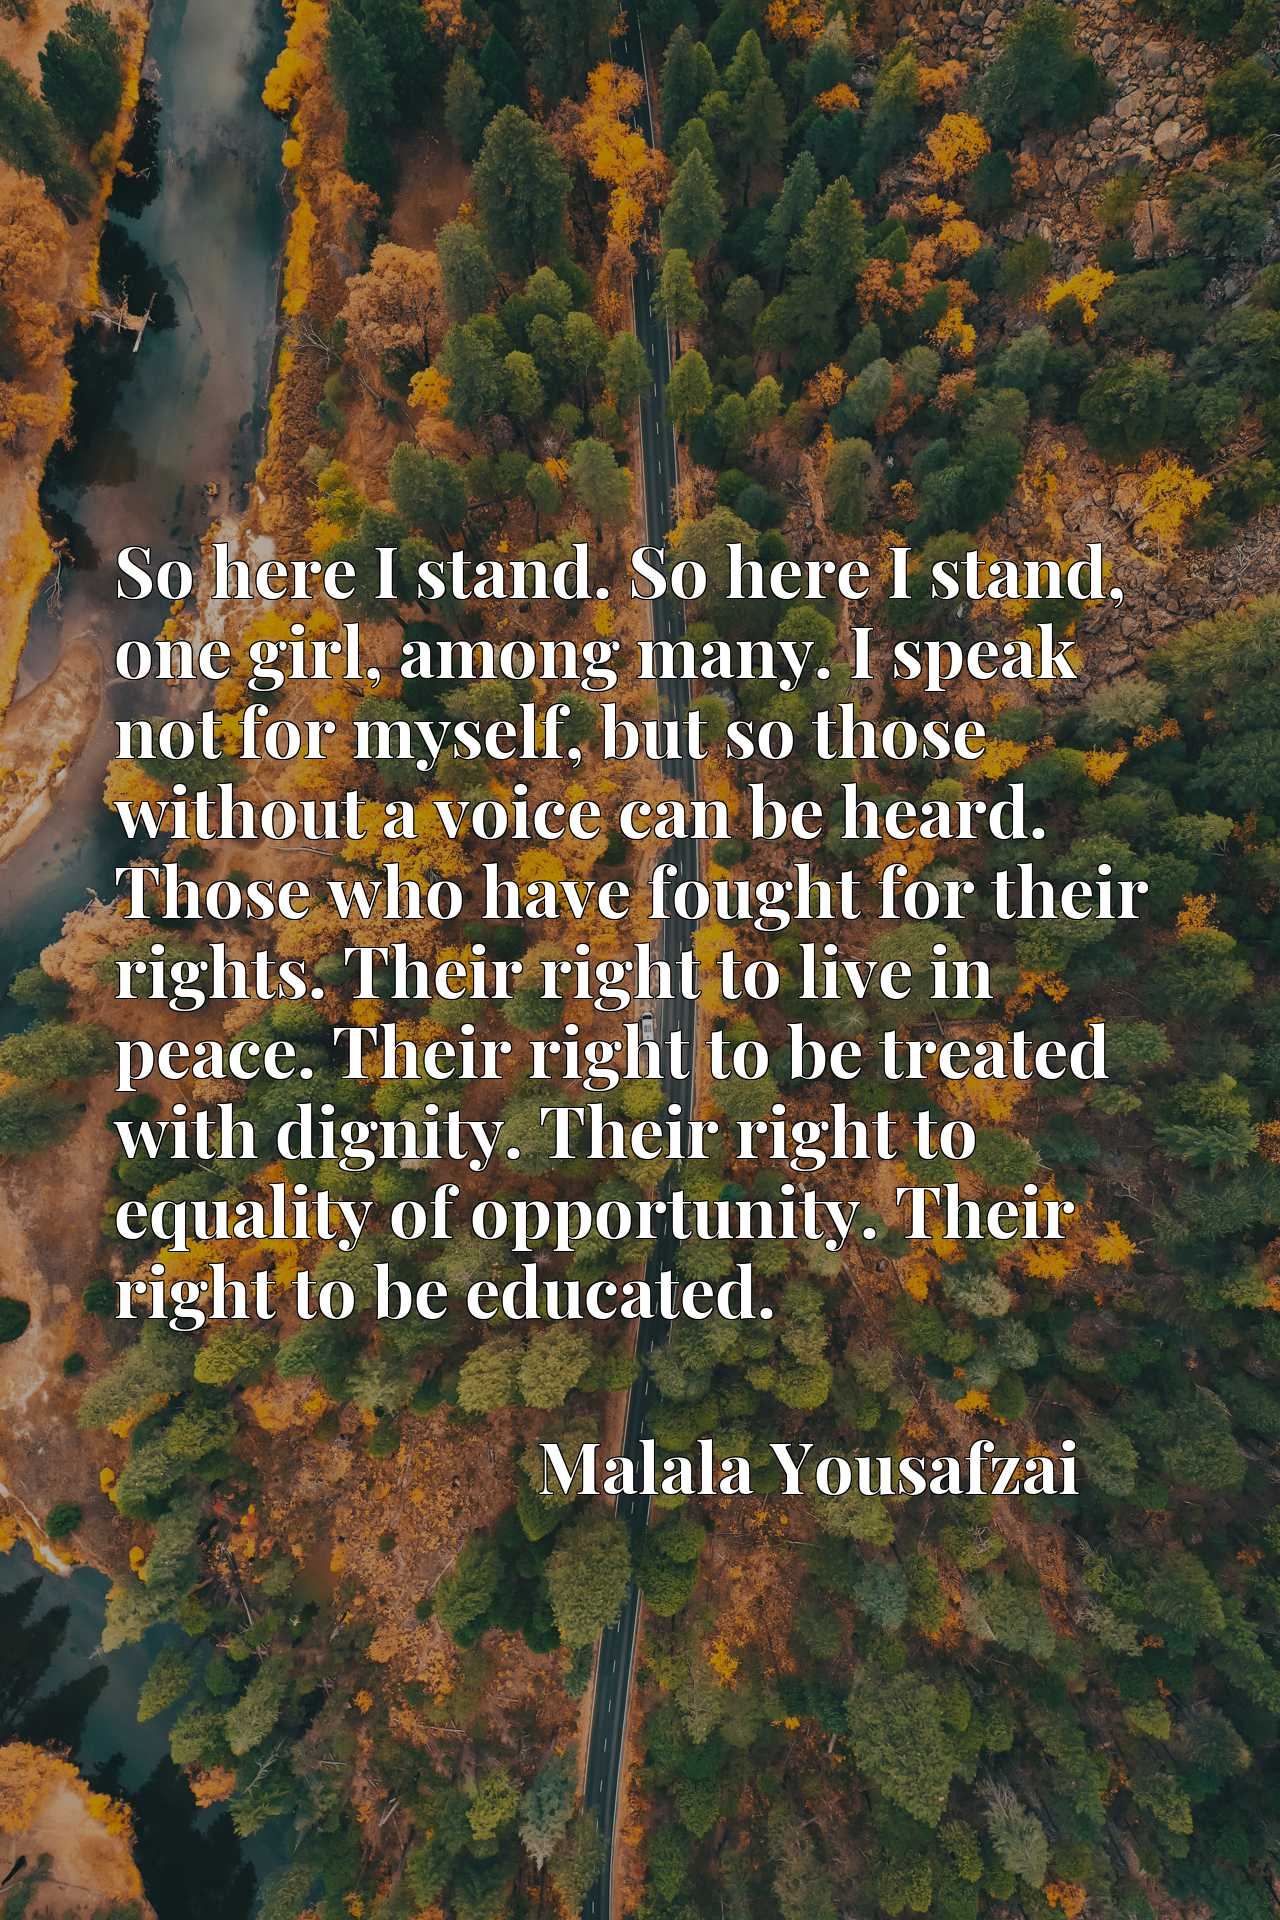 So here I stand. So here I stand, one girl, among many. I speak not for myself, but so those without a voice can be heard. Those who have fought for their rights. Their right to live in peace. Their right to be treated with dignity. Their right to equality of opportunity. Their right to be educated.